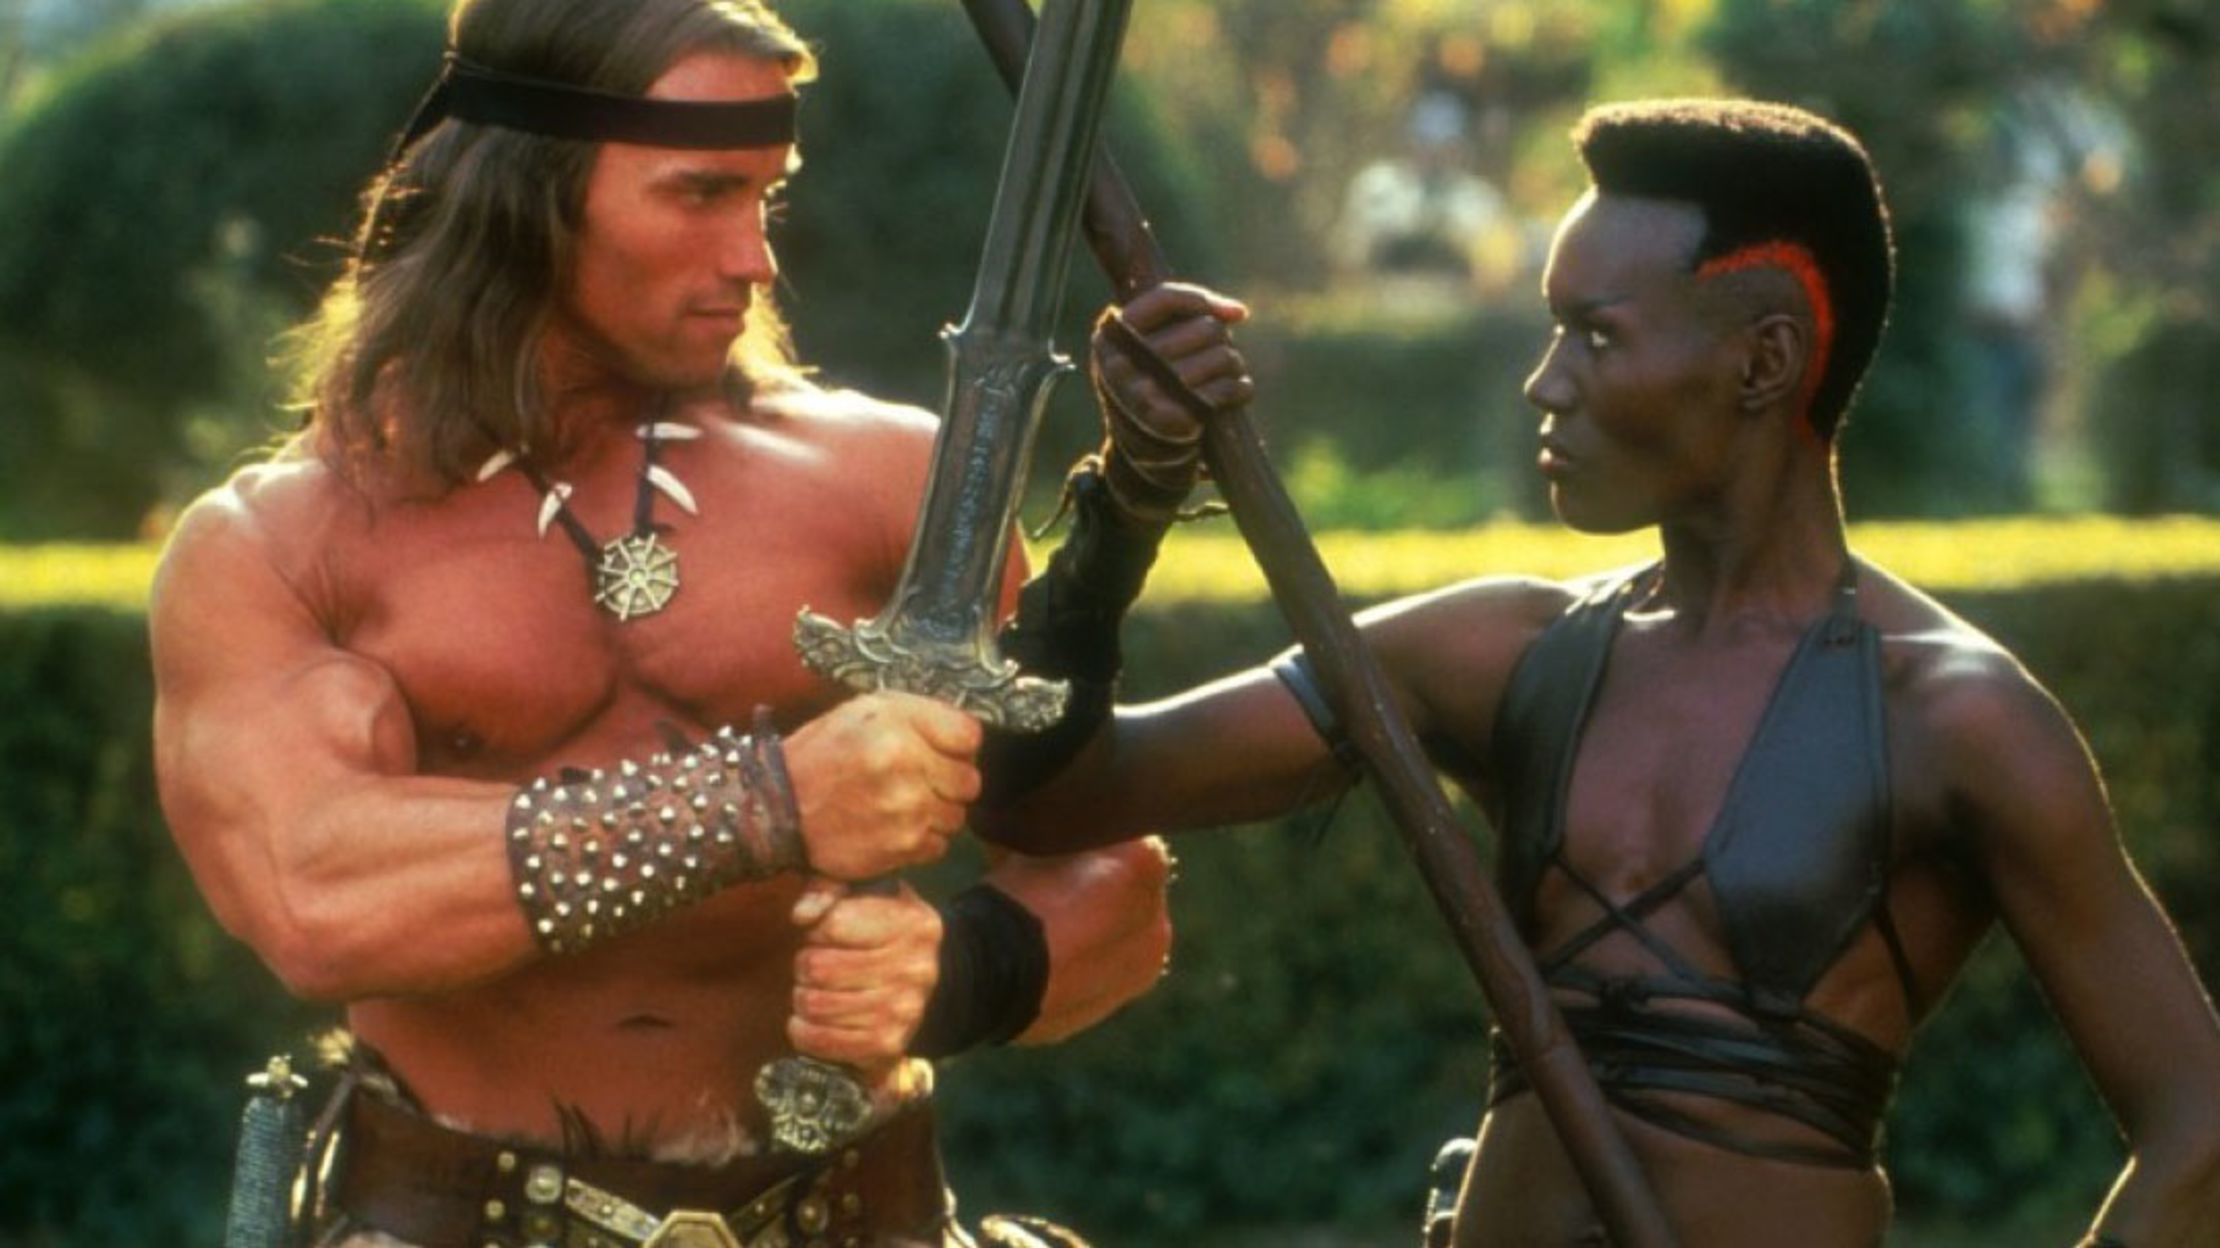 John Jones Auto >> 15 Things You Probably Didn't Know About 'Conan the Destroyer' | Mental Floss